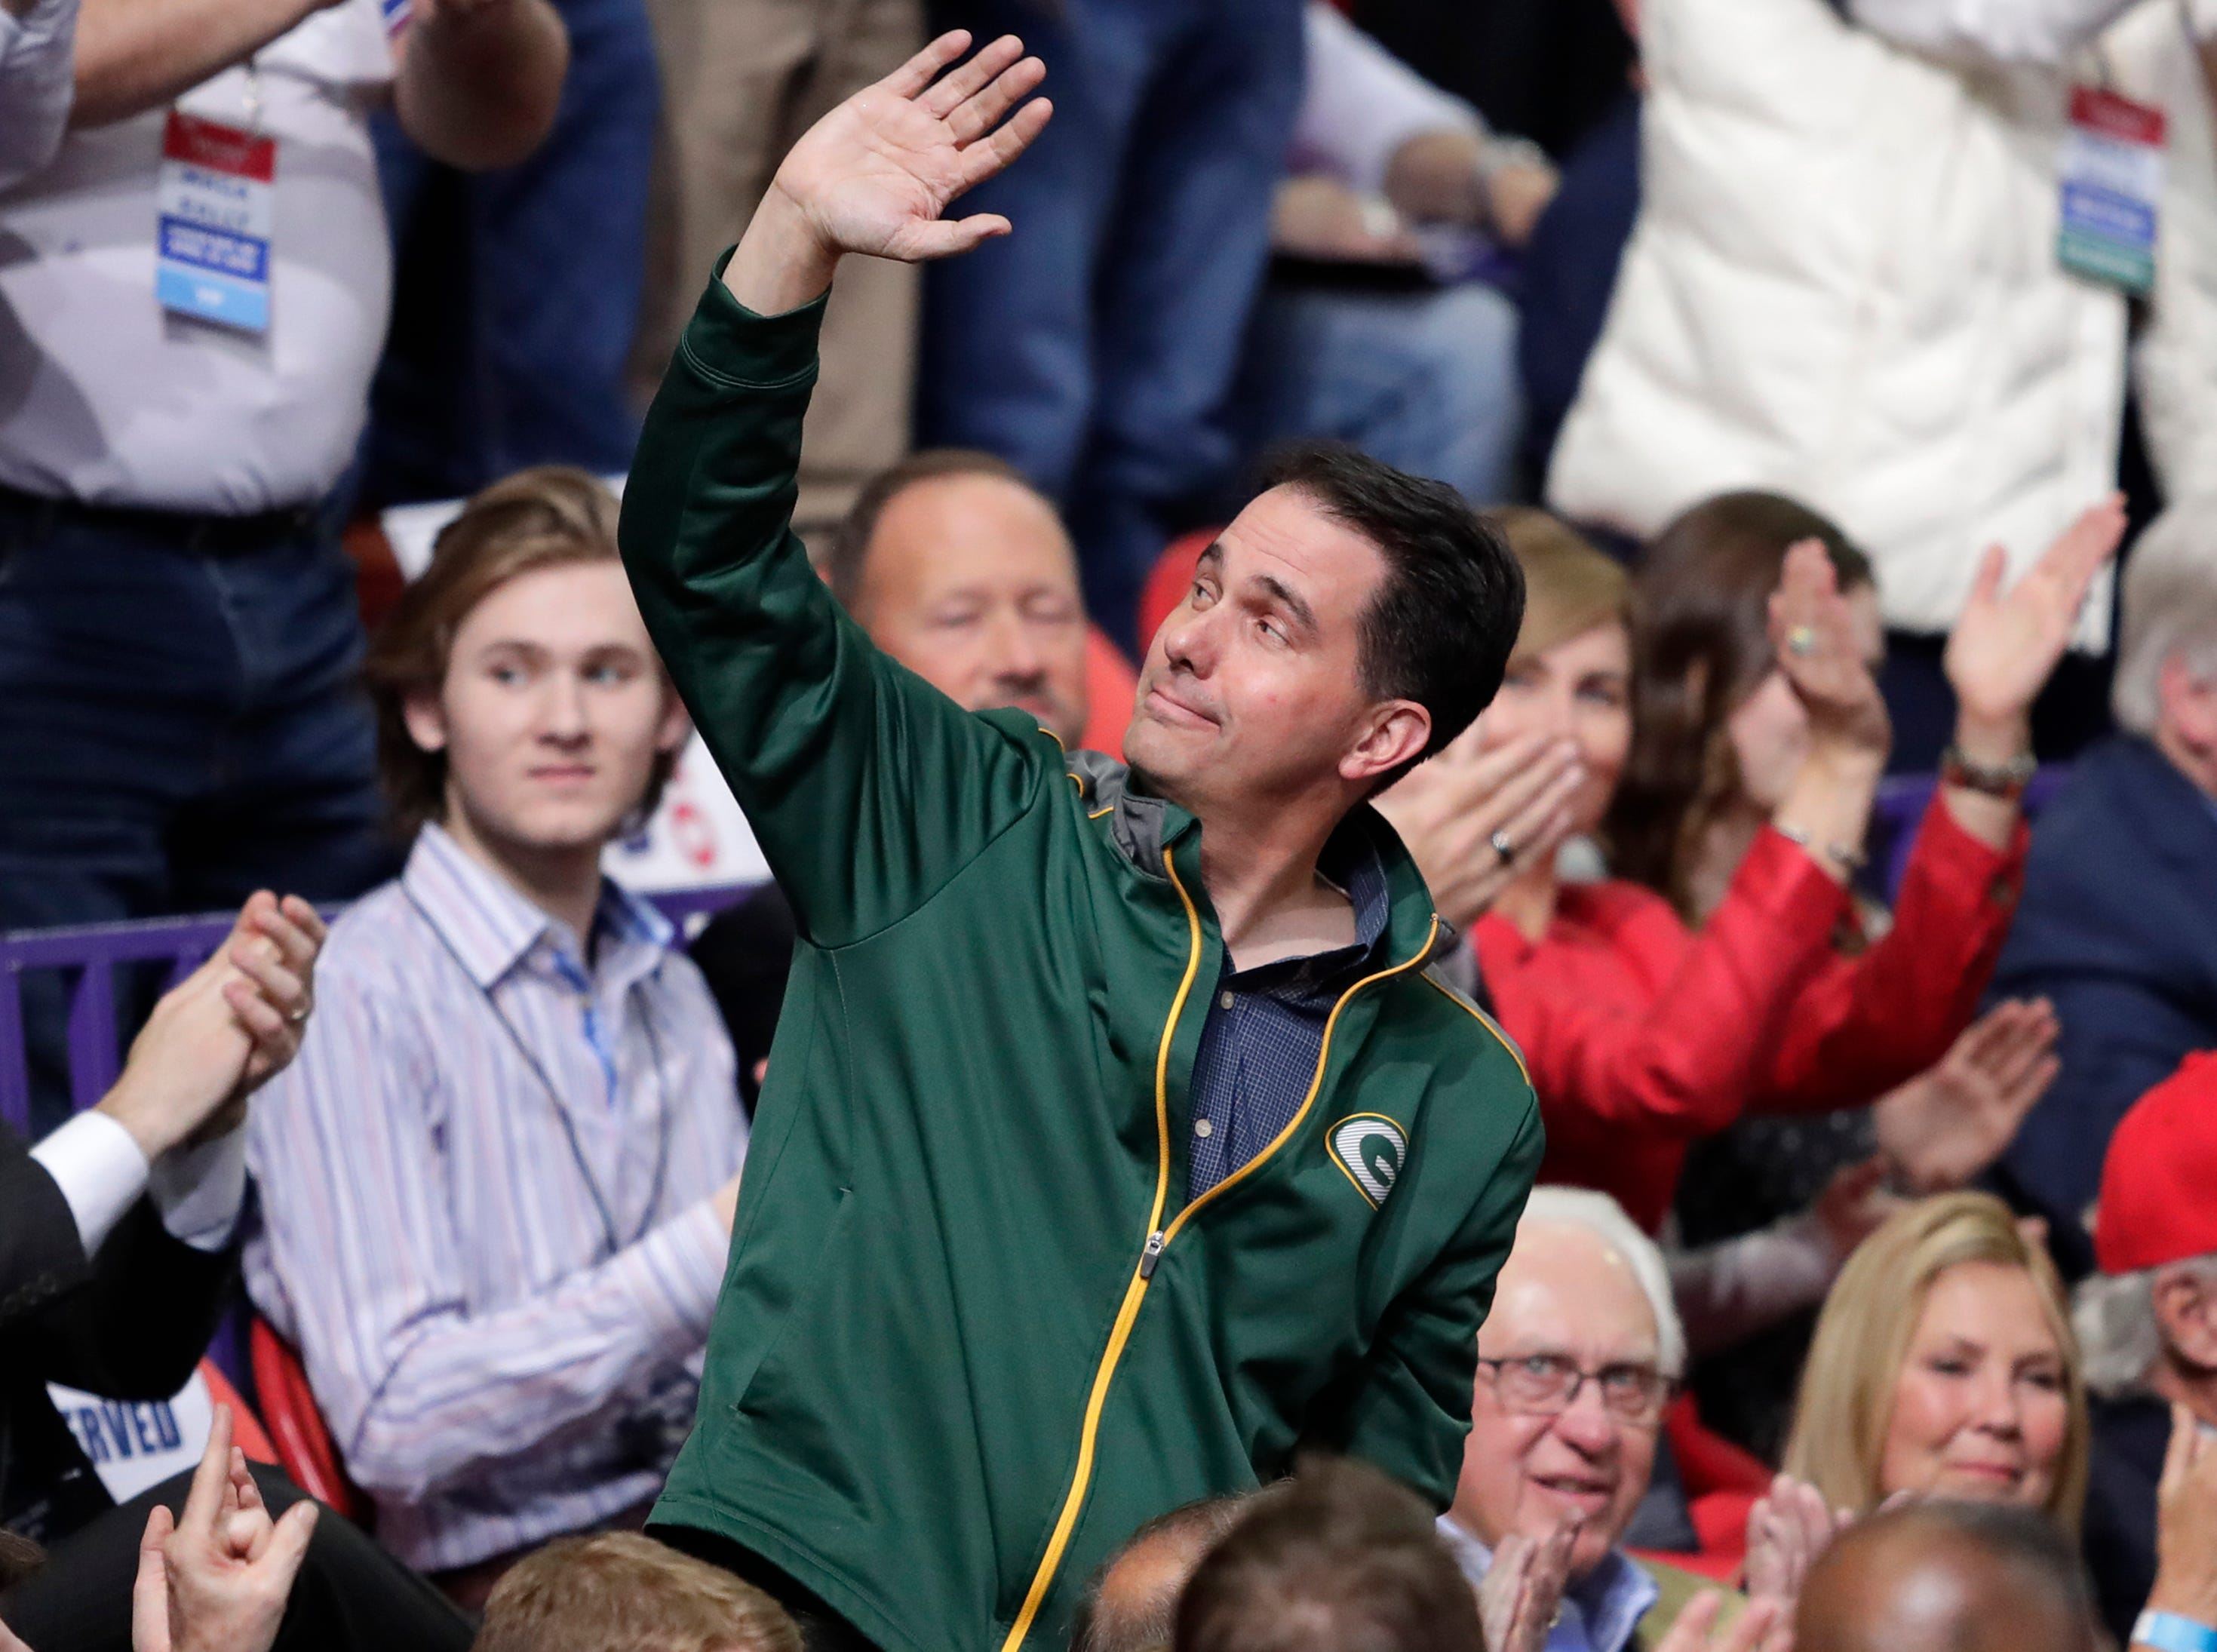 Former Wisconsin Governor Scott Walker waves to the crowd after being mentioned by President Donald J. Trump during a Make America Great Again Rally on Saturday, April 27, 2019, at the Resch Center in Green Bay, Wis.